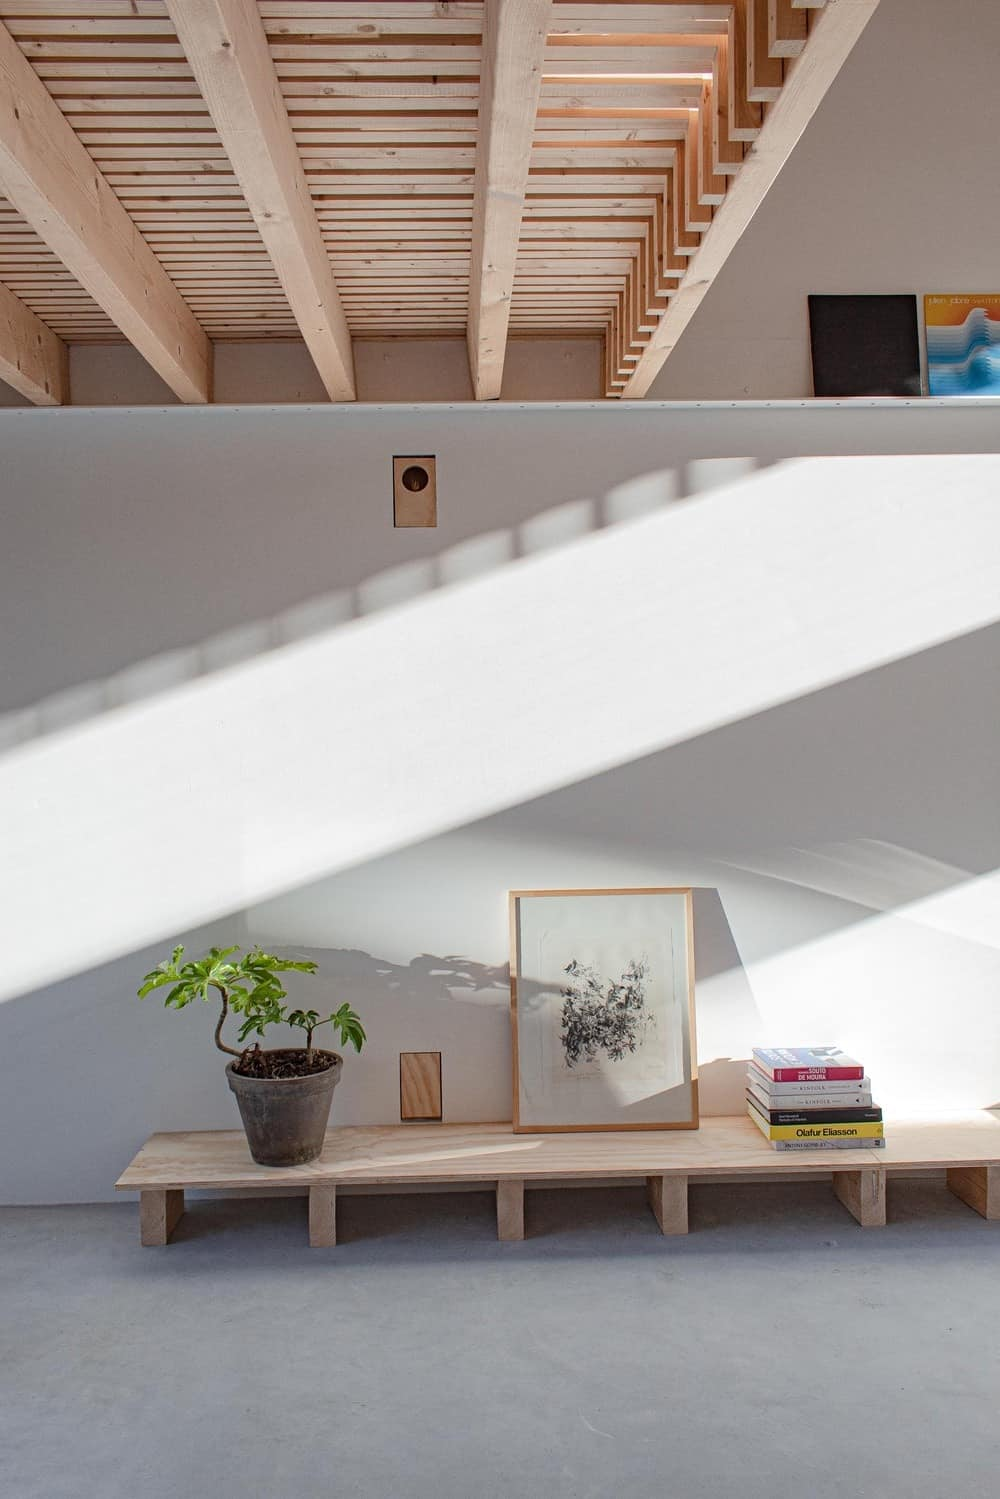 This wall is adorned with a long and low wooden platform that bears a potted plant, a framed artwork and a stack of books for decorative purposes.